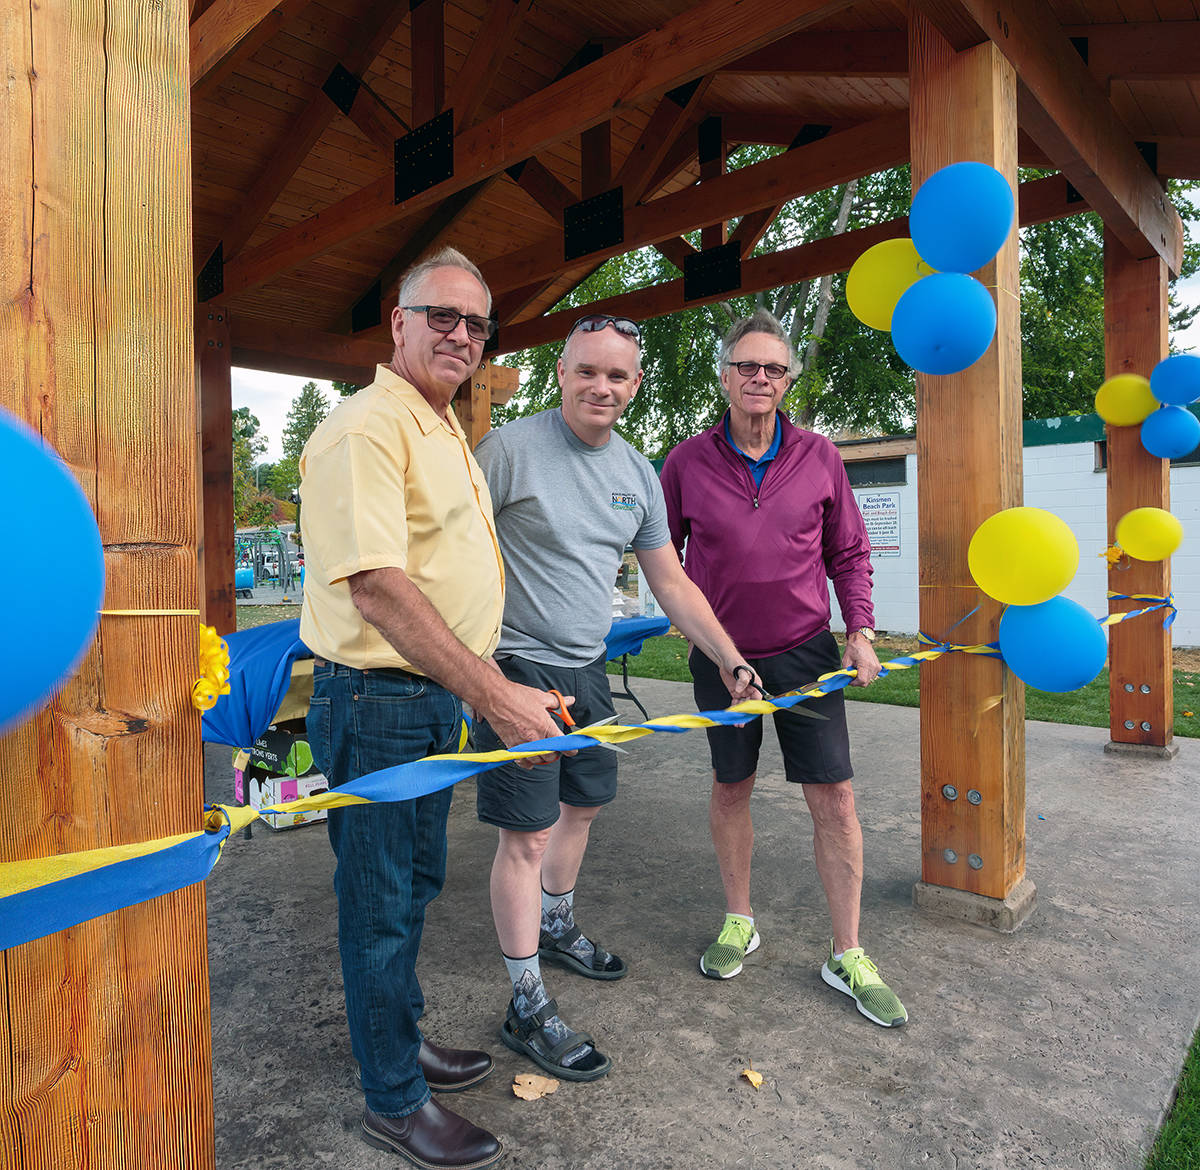 Ribbon-cutting by Ken Stanton and Don Stewart with Tom Andrews marks the official opening of the Rotary picnic shelter. (Photo by Art Carlyle)